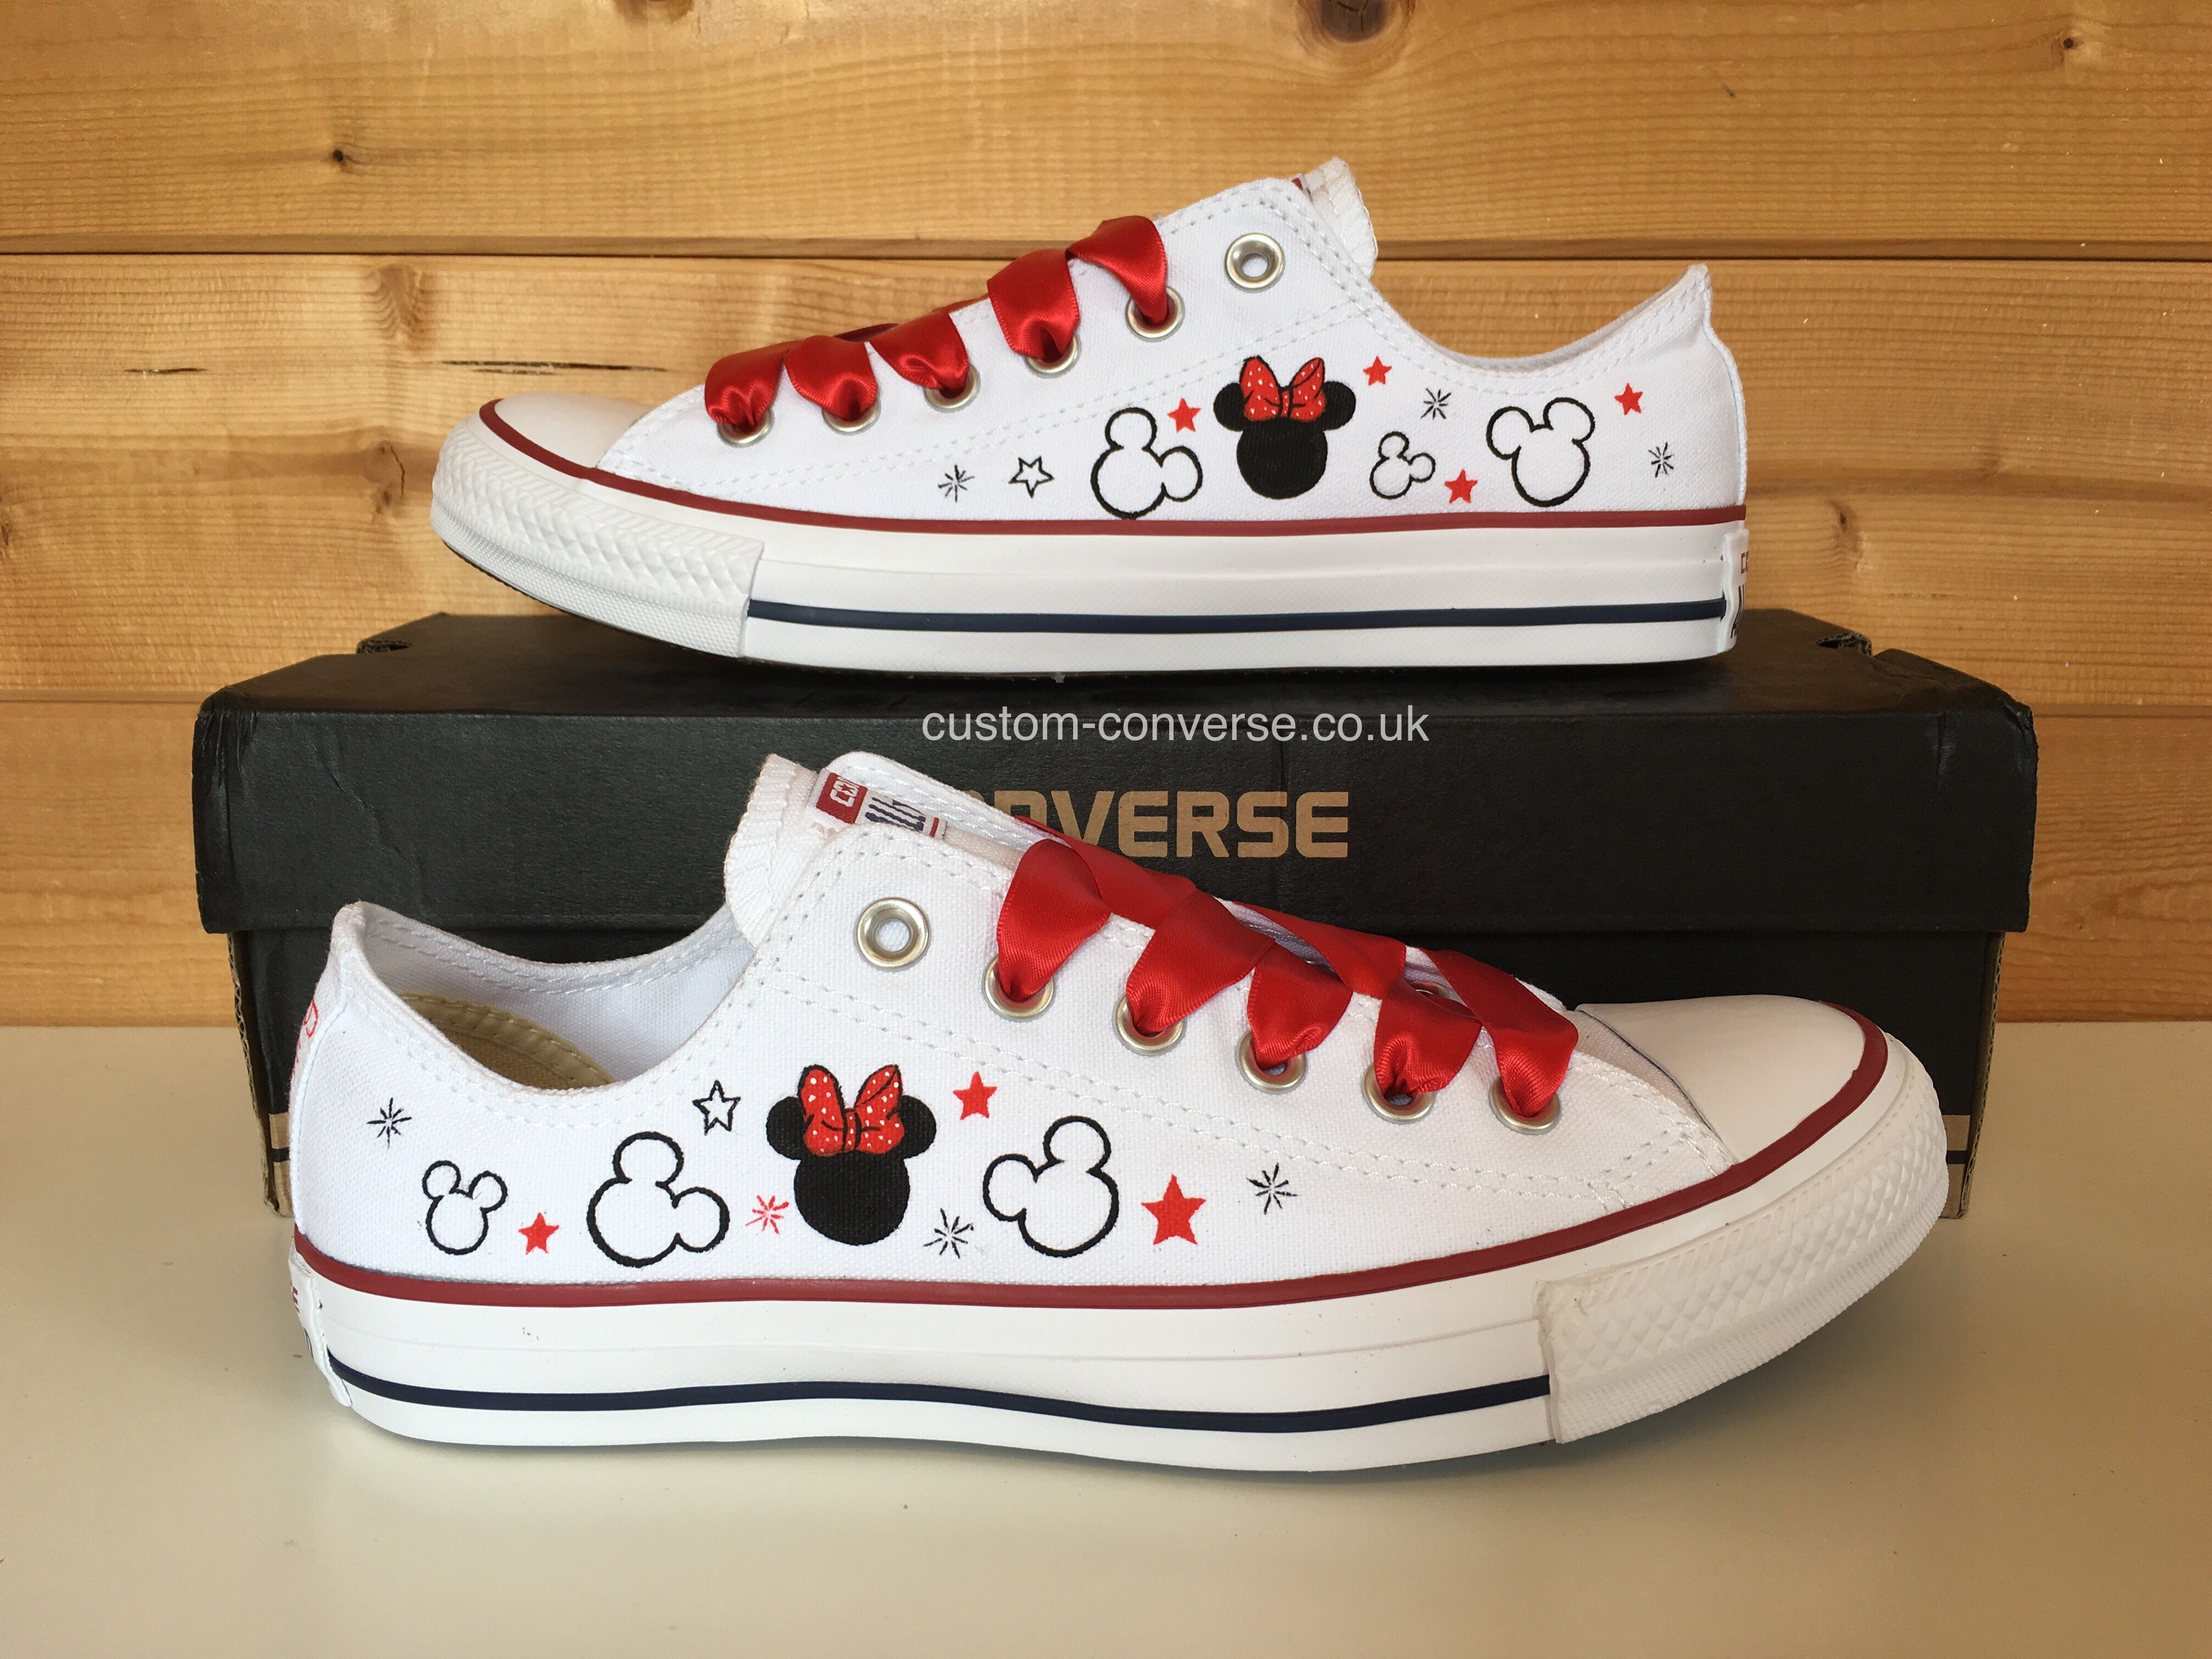 014d5a964b55 Minnie Mouse Low Top Converse  minniemouse  minnie  disney  customconverse   converse